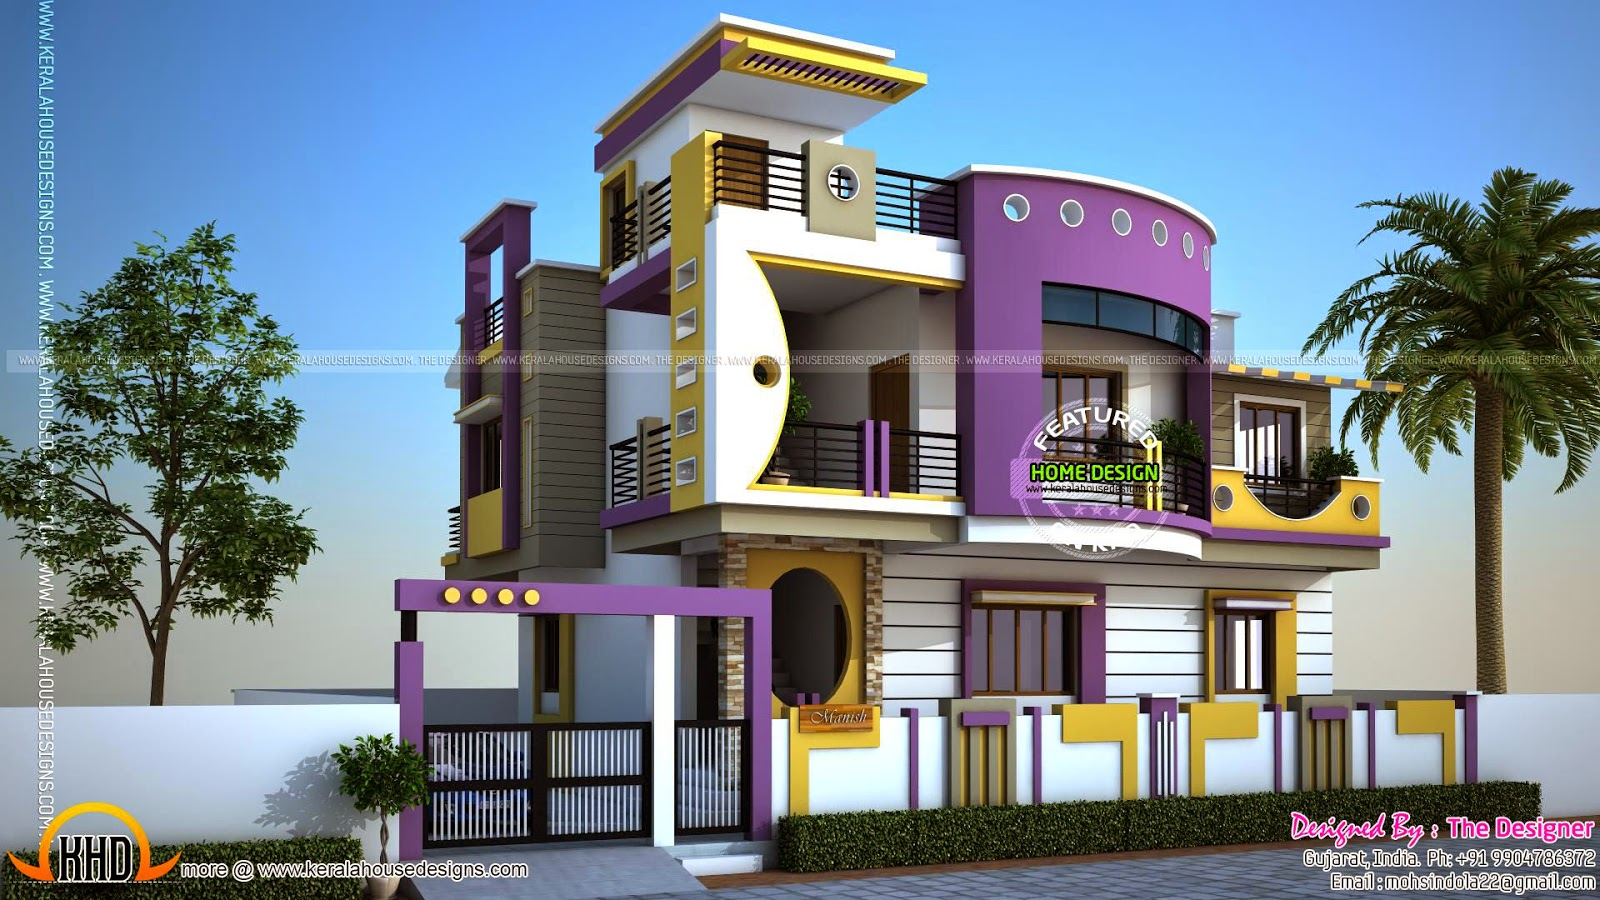 House exterior designs in contemporary style kerala home for Home outside design